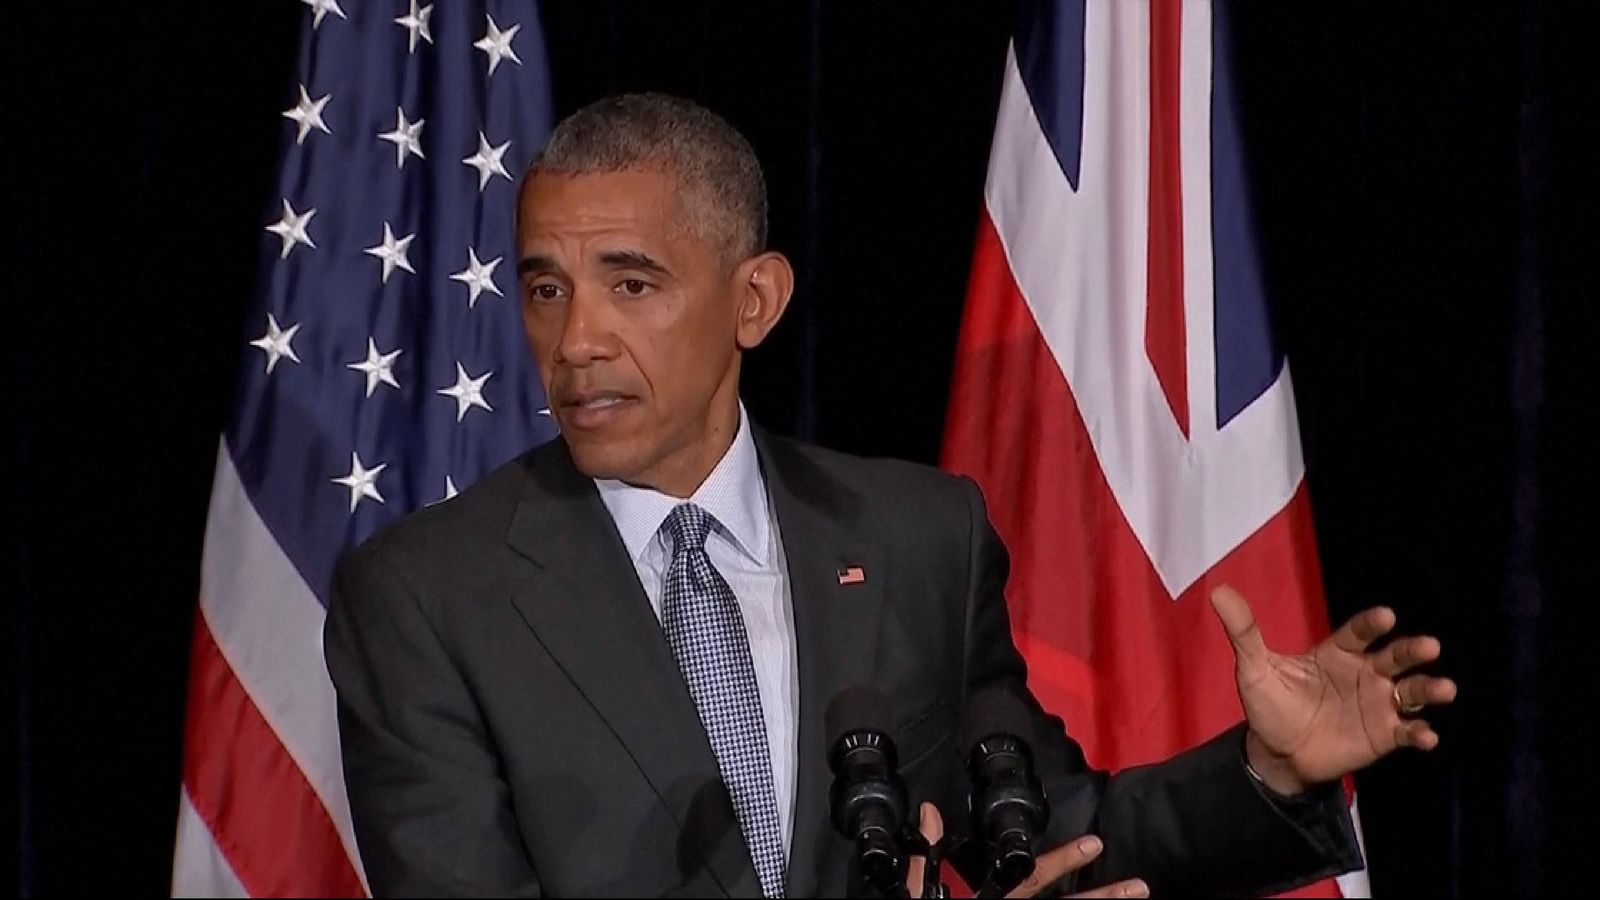 Barack Obama: I never said Britain would be punished